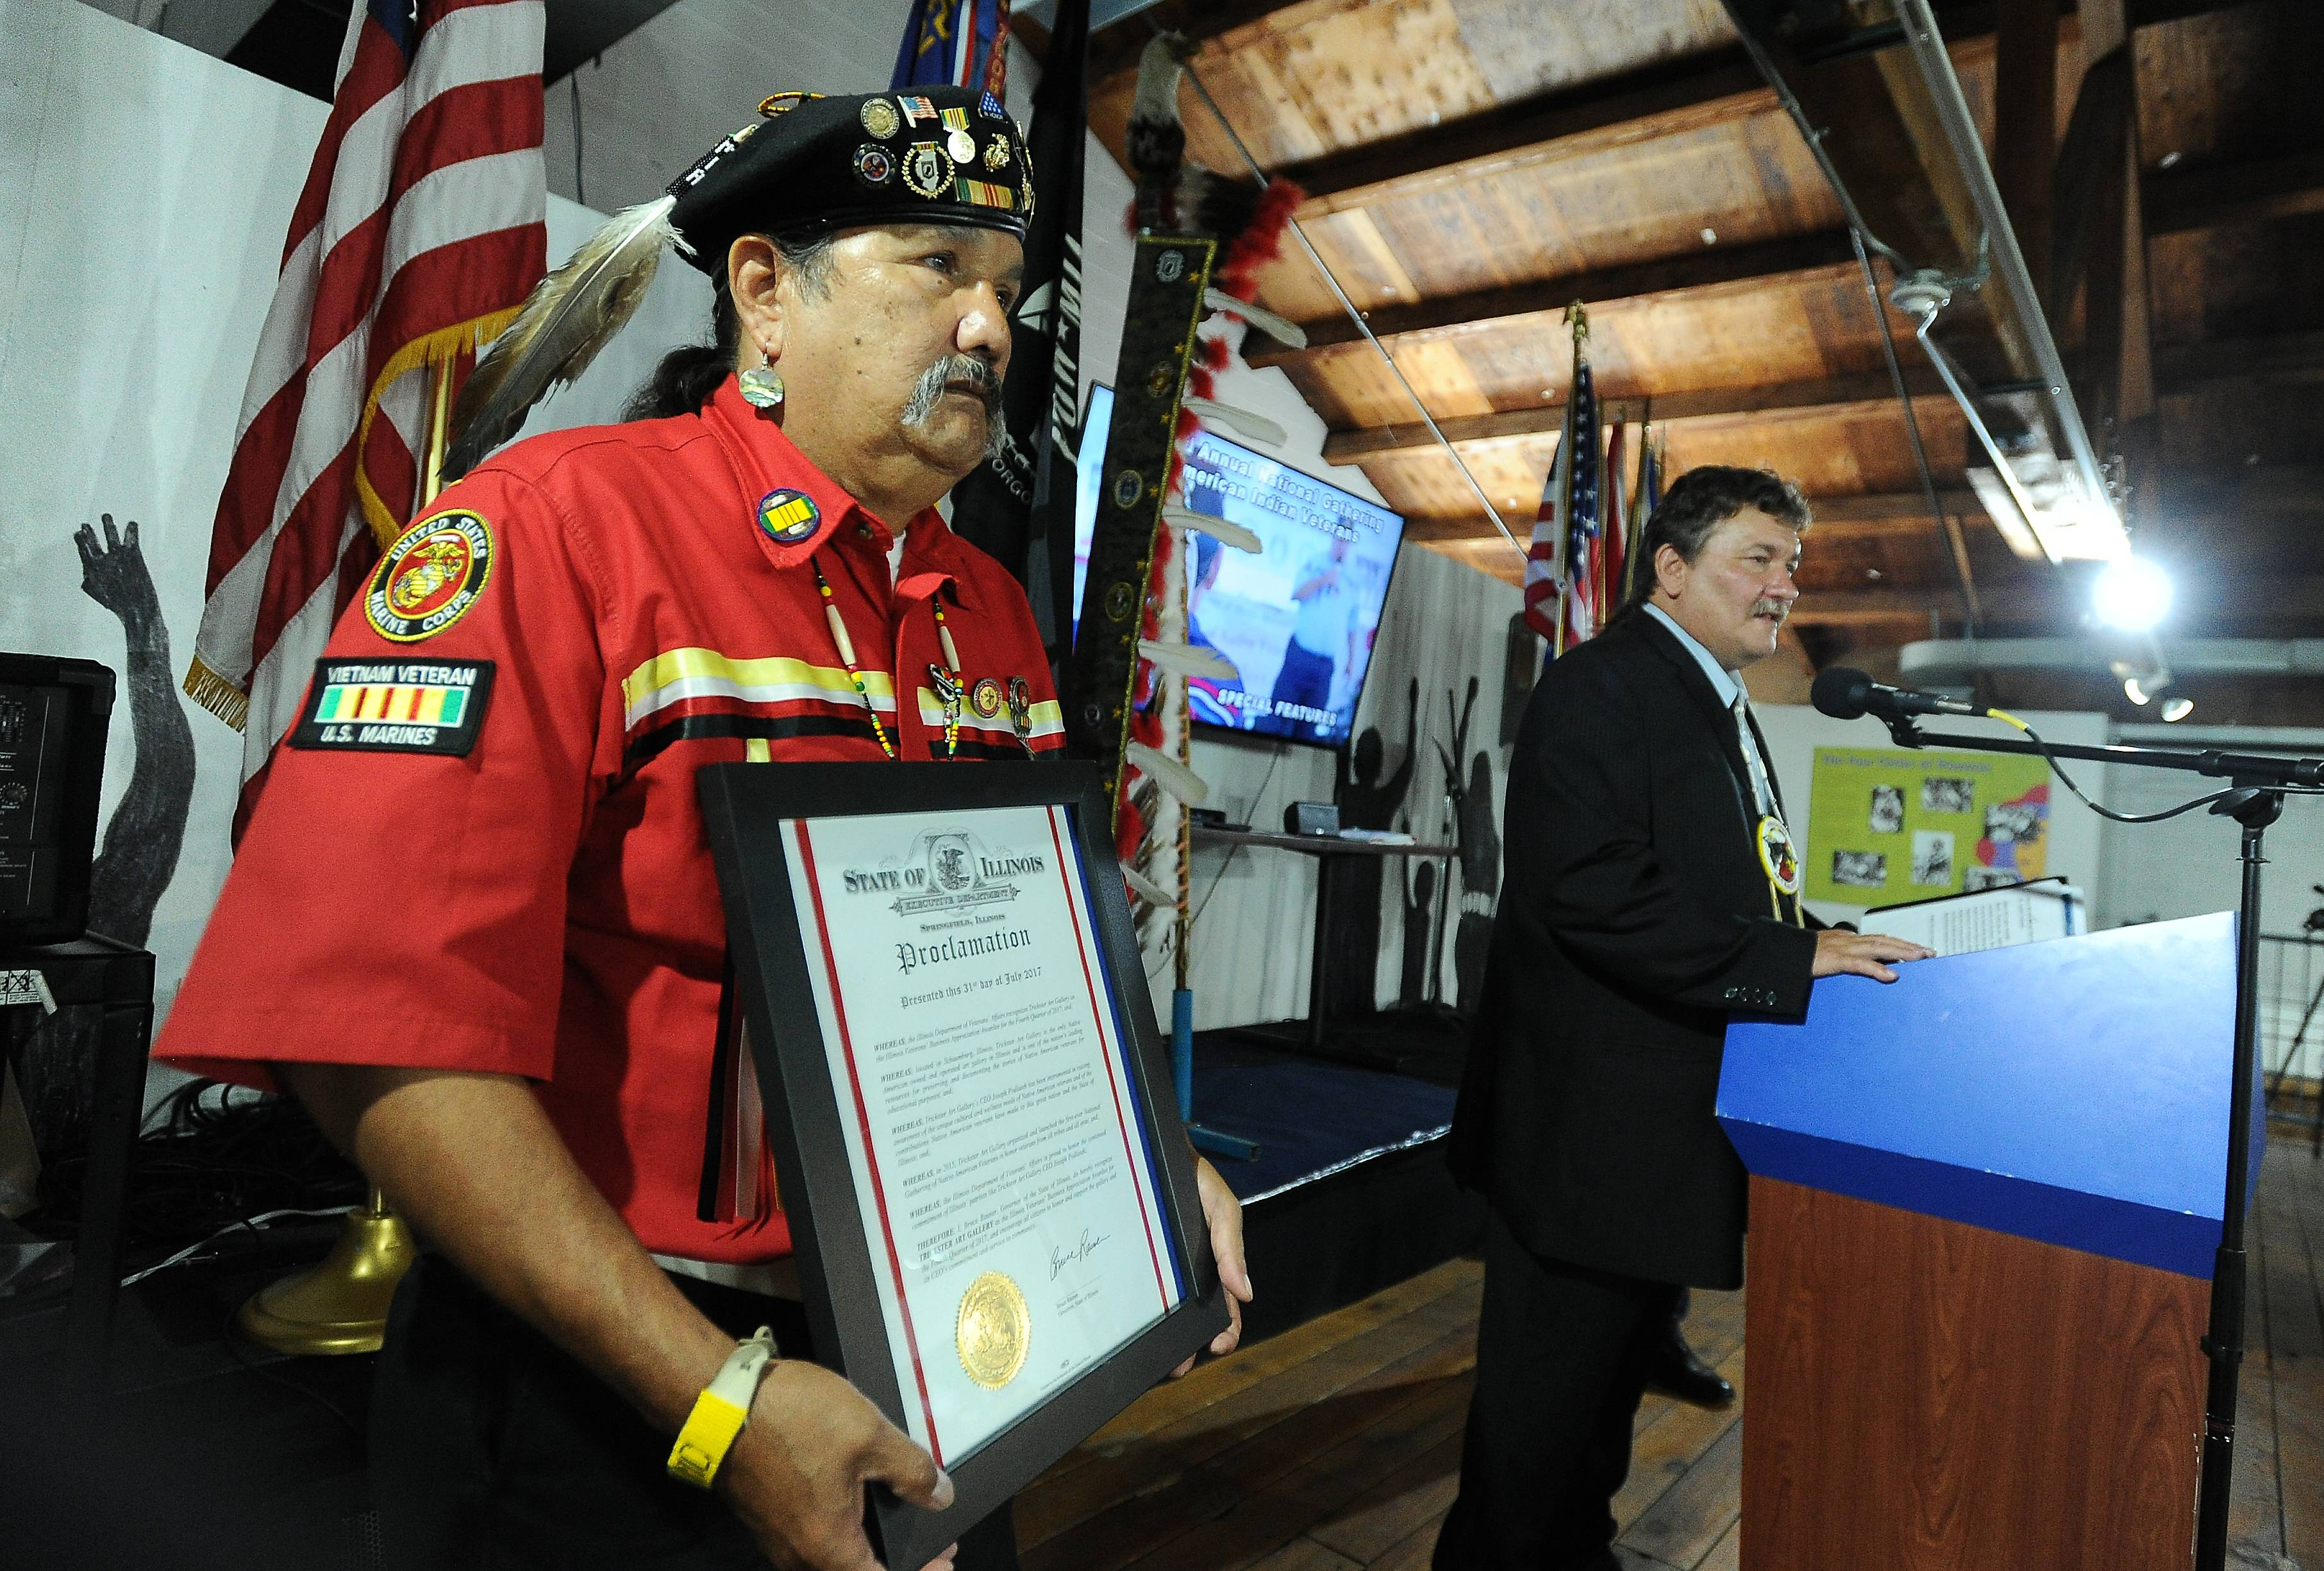 Native veteran Cmdr. Mike Pamonicutt, left, holds Gov. Rauner's proclamation honoring the Trickster Art Gallery in Schaumburg with the Illinois Veterans' Business Appreciation Award as Joseph Podlasek, CEO of the gallery, talks about the award to veterans and their families.